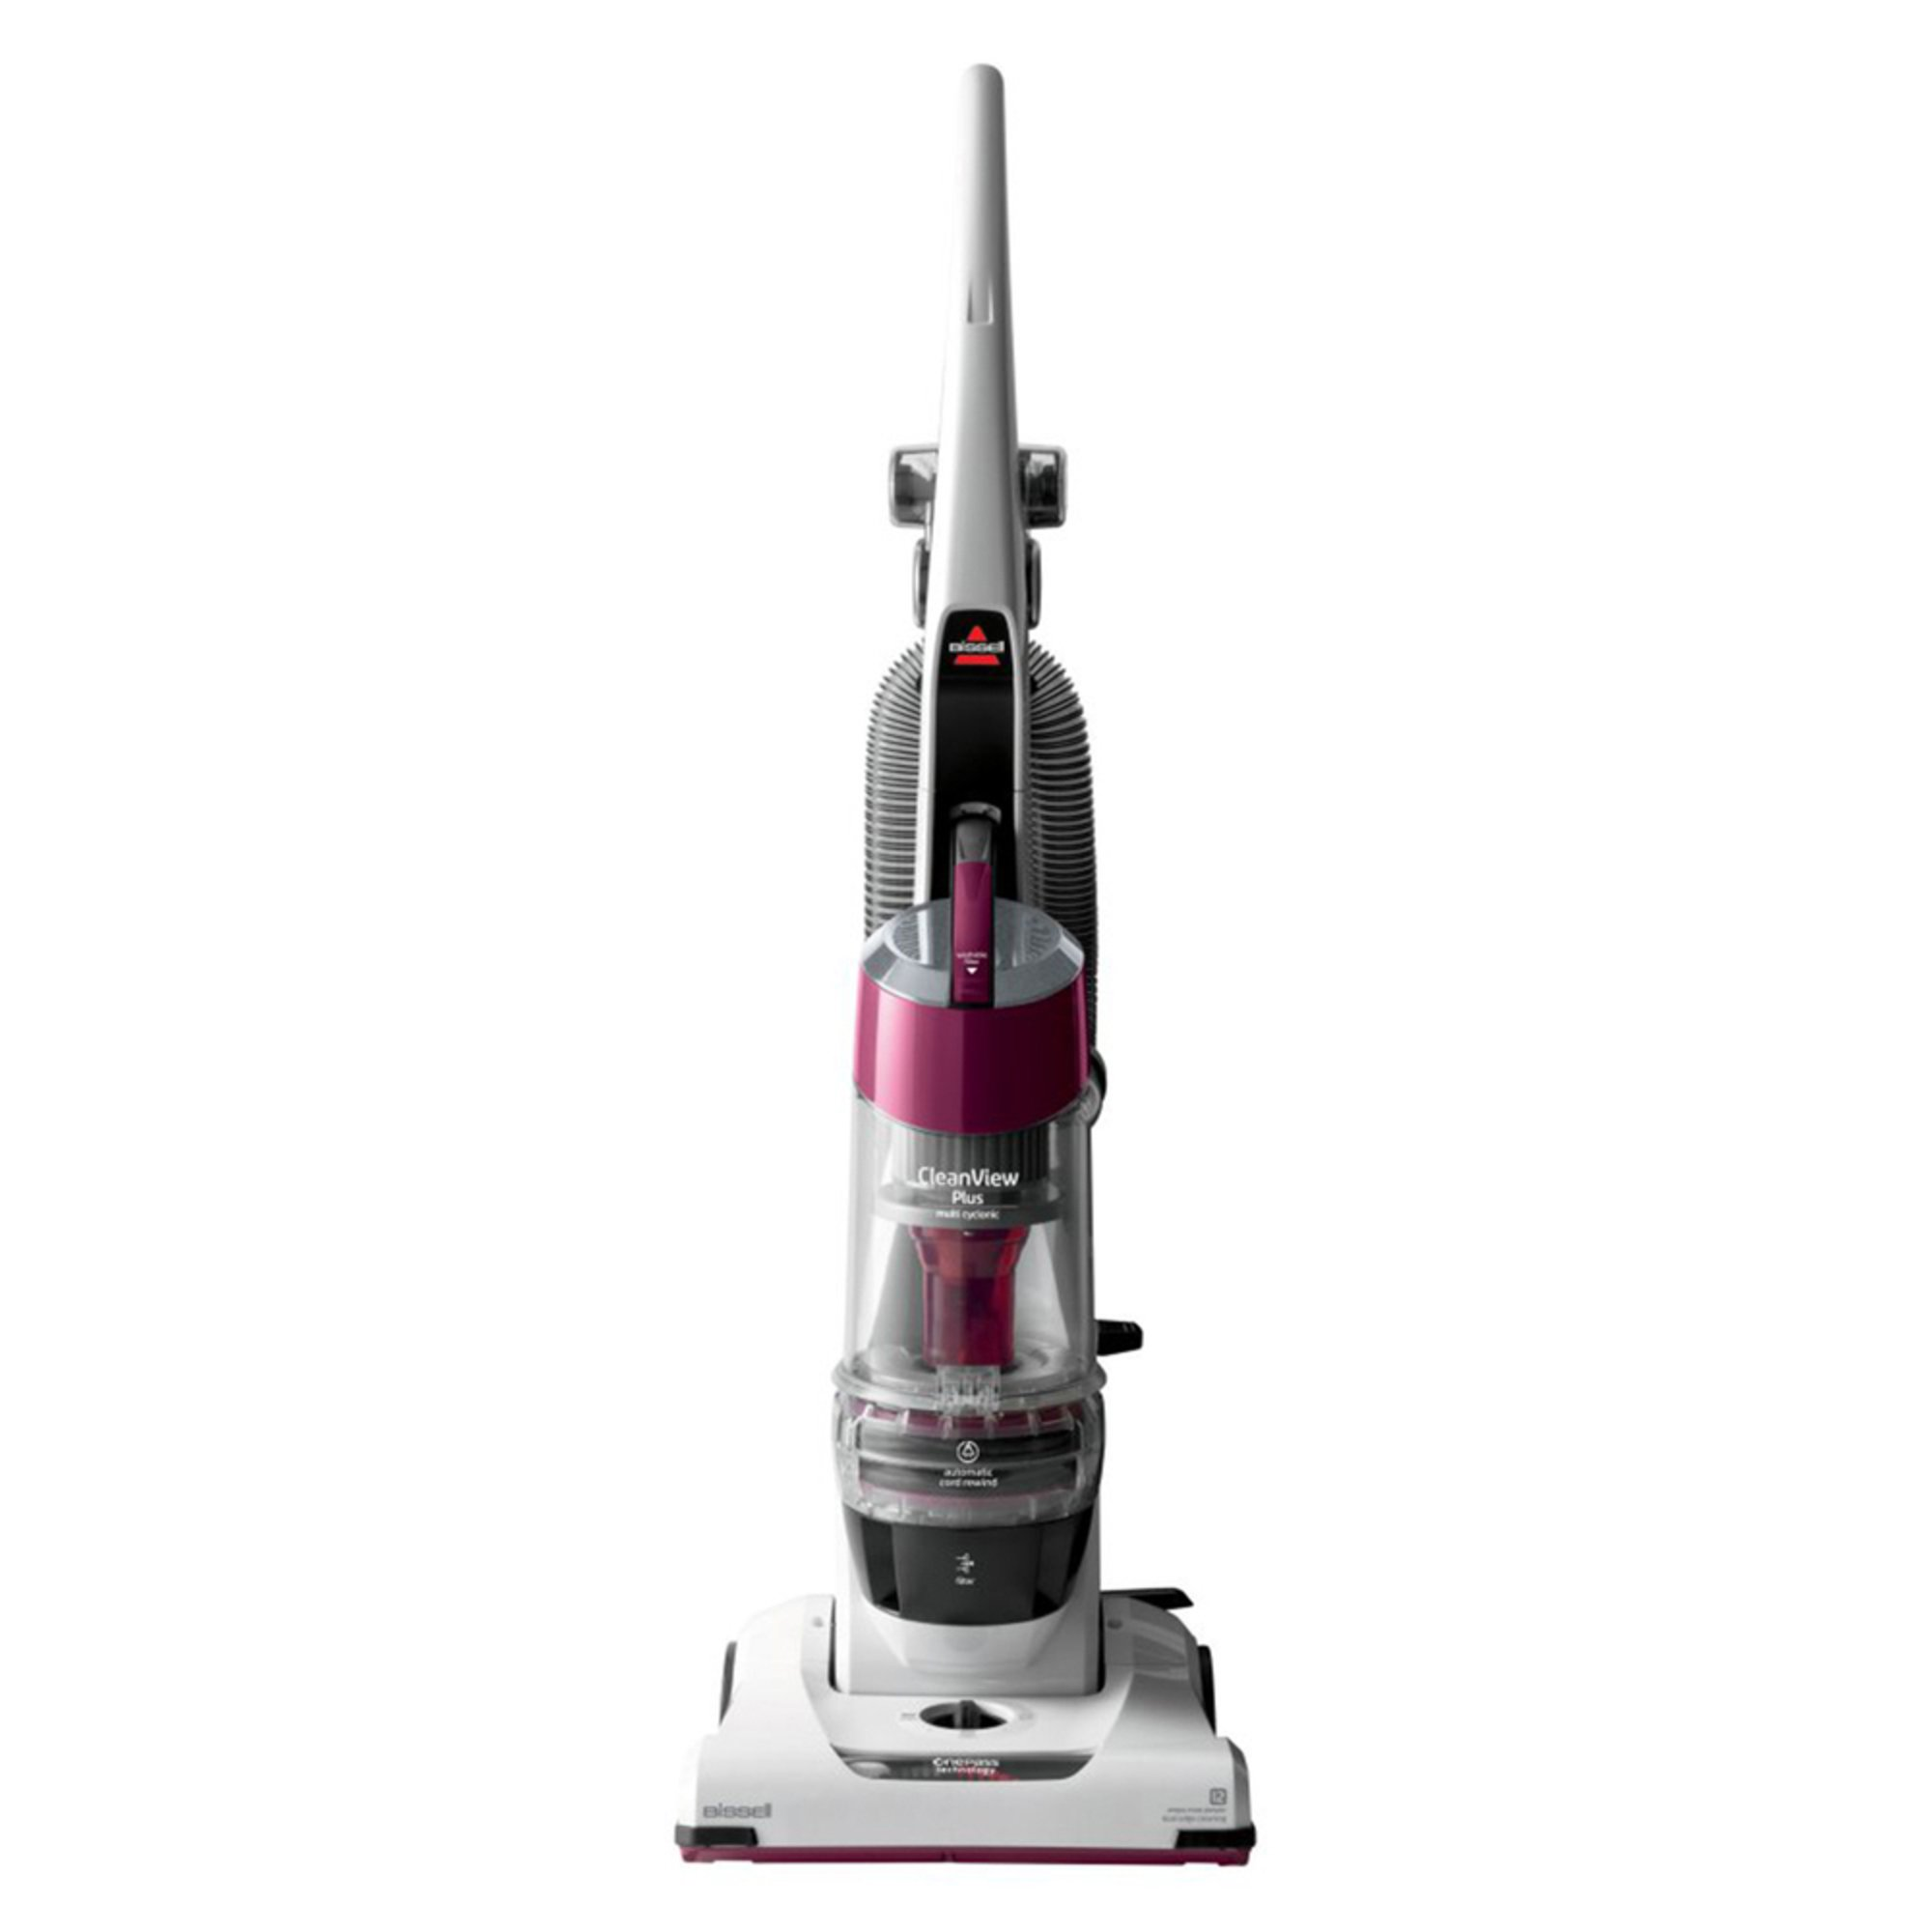 Upright Vacuums. 0